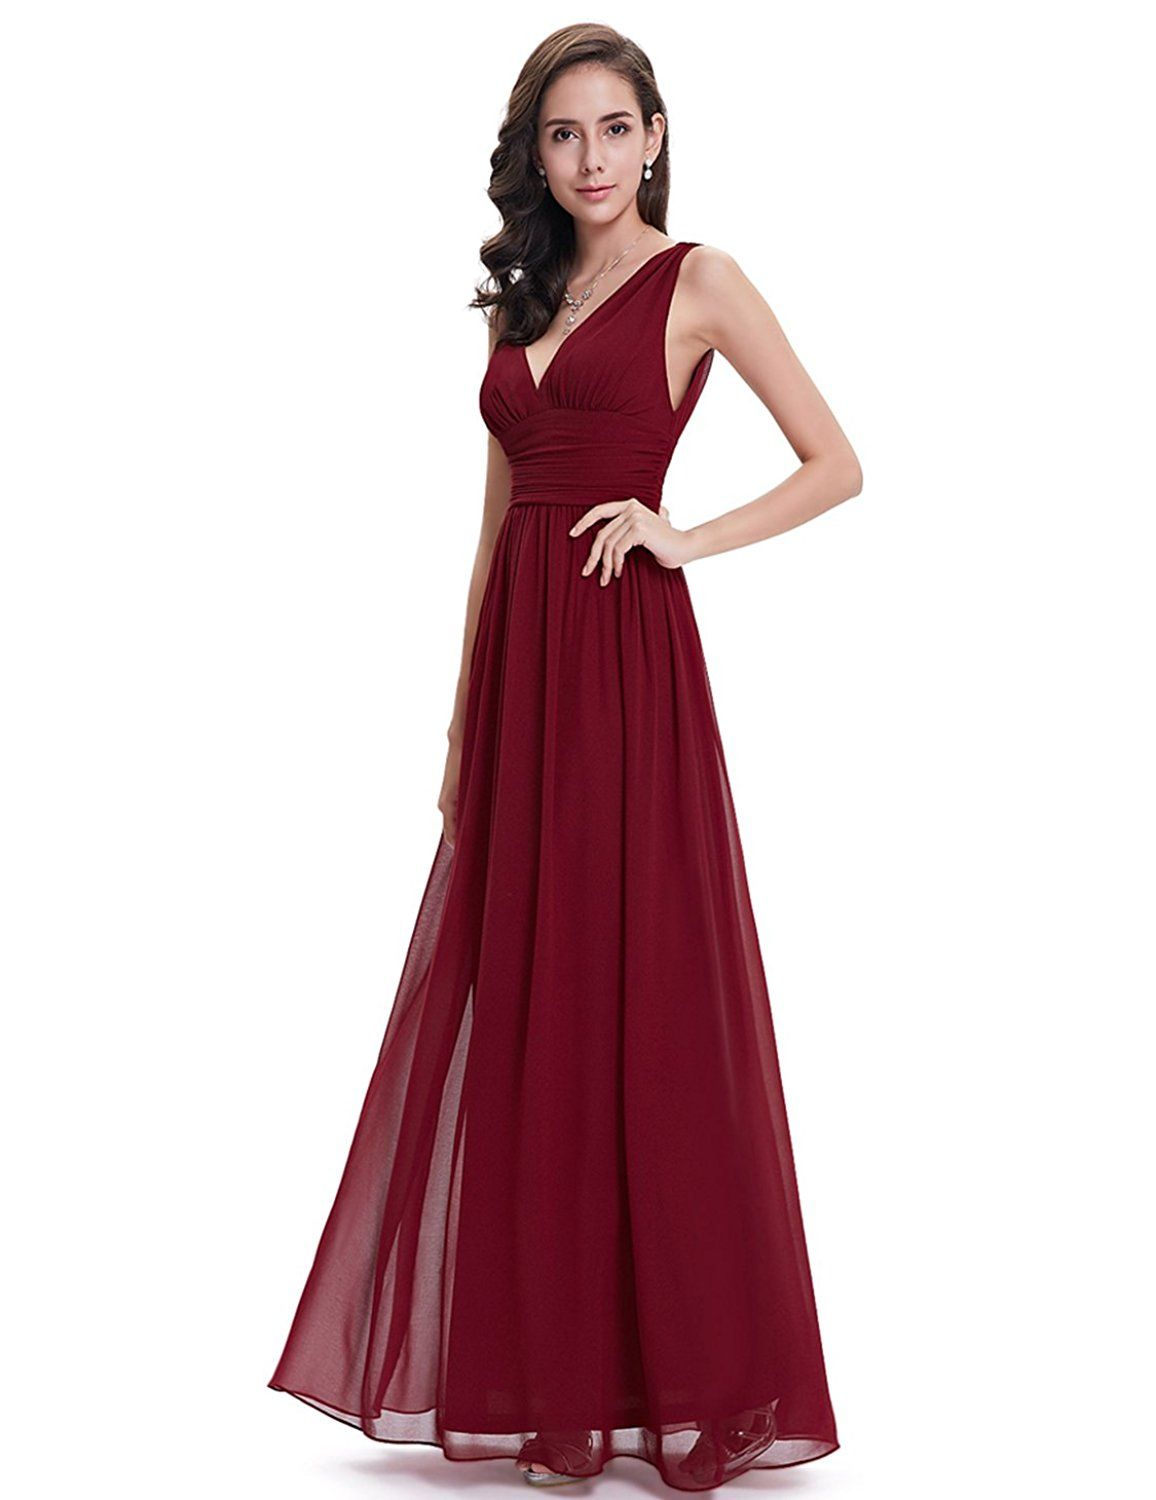 d410cb41f4 Ever Pretty Sleeveless V-Neck Semi-Formal Maxi Dress 09016 – Shop2online  best woman s fashion products designed to provide